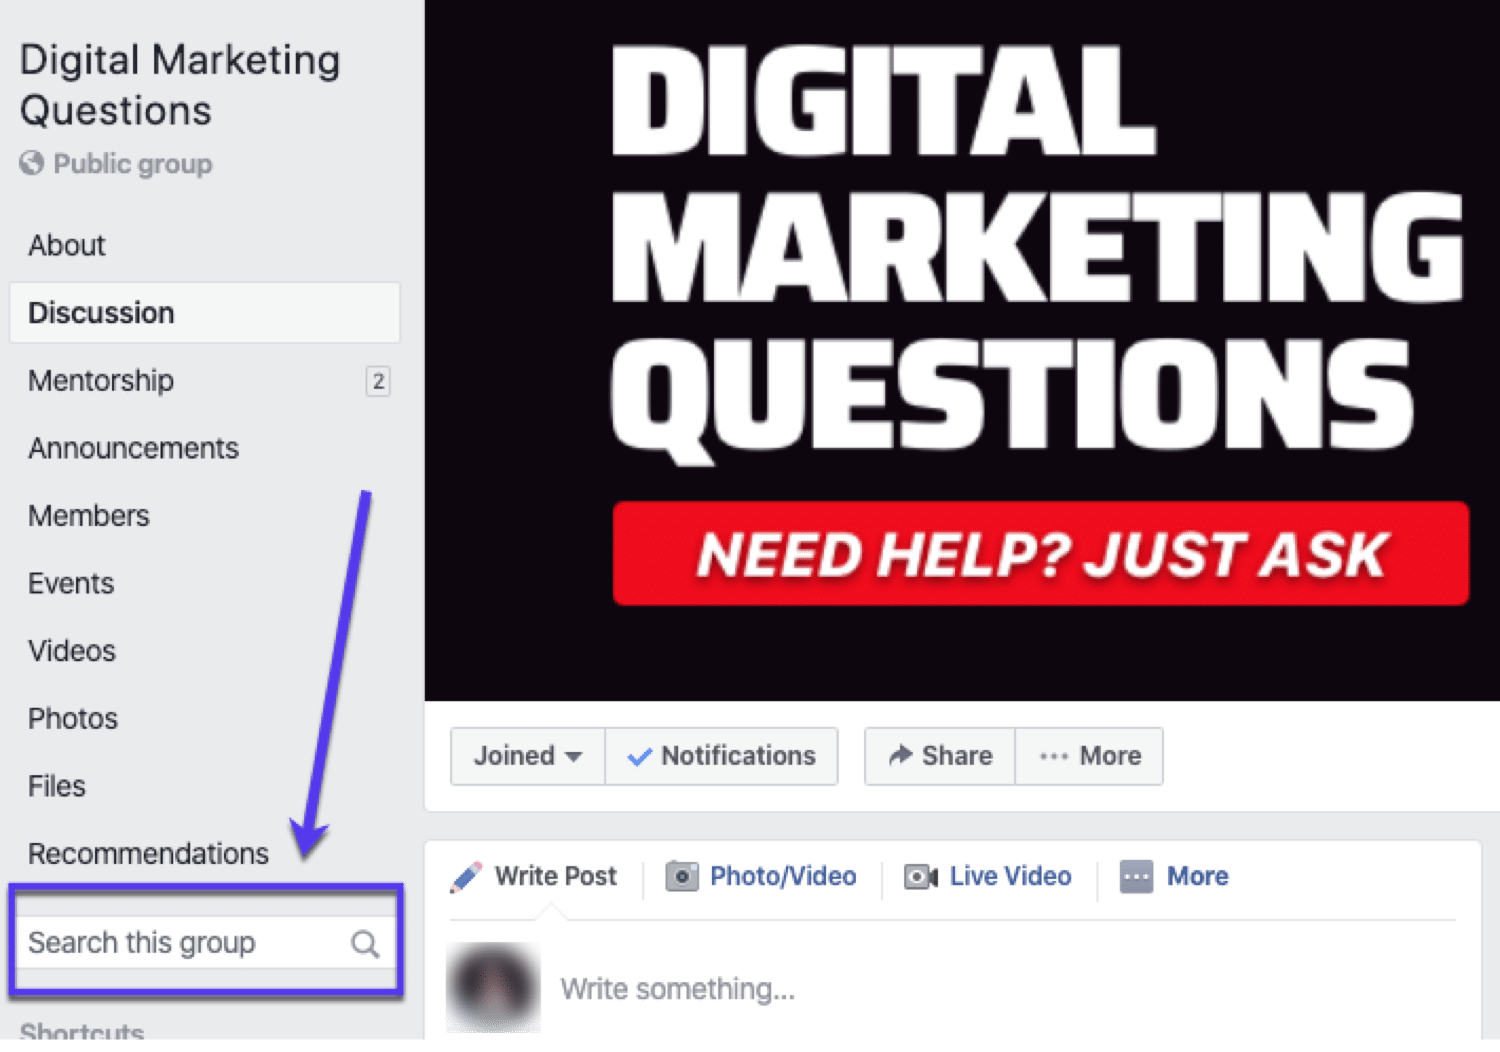 Digital Marketing Questions is een populaire Facebook-groep